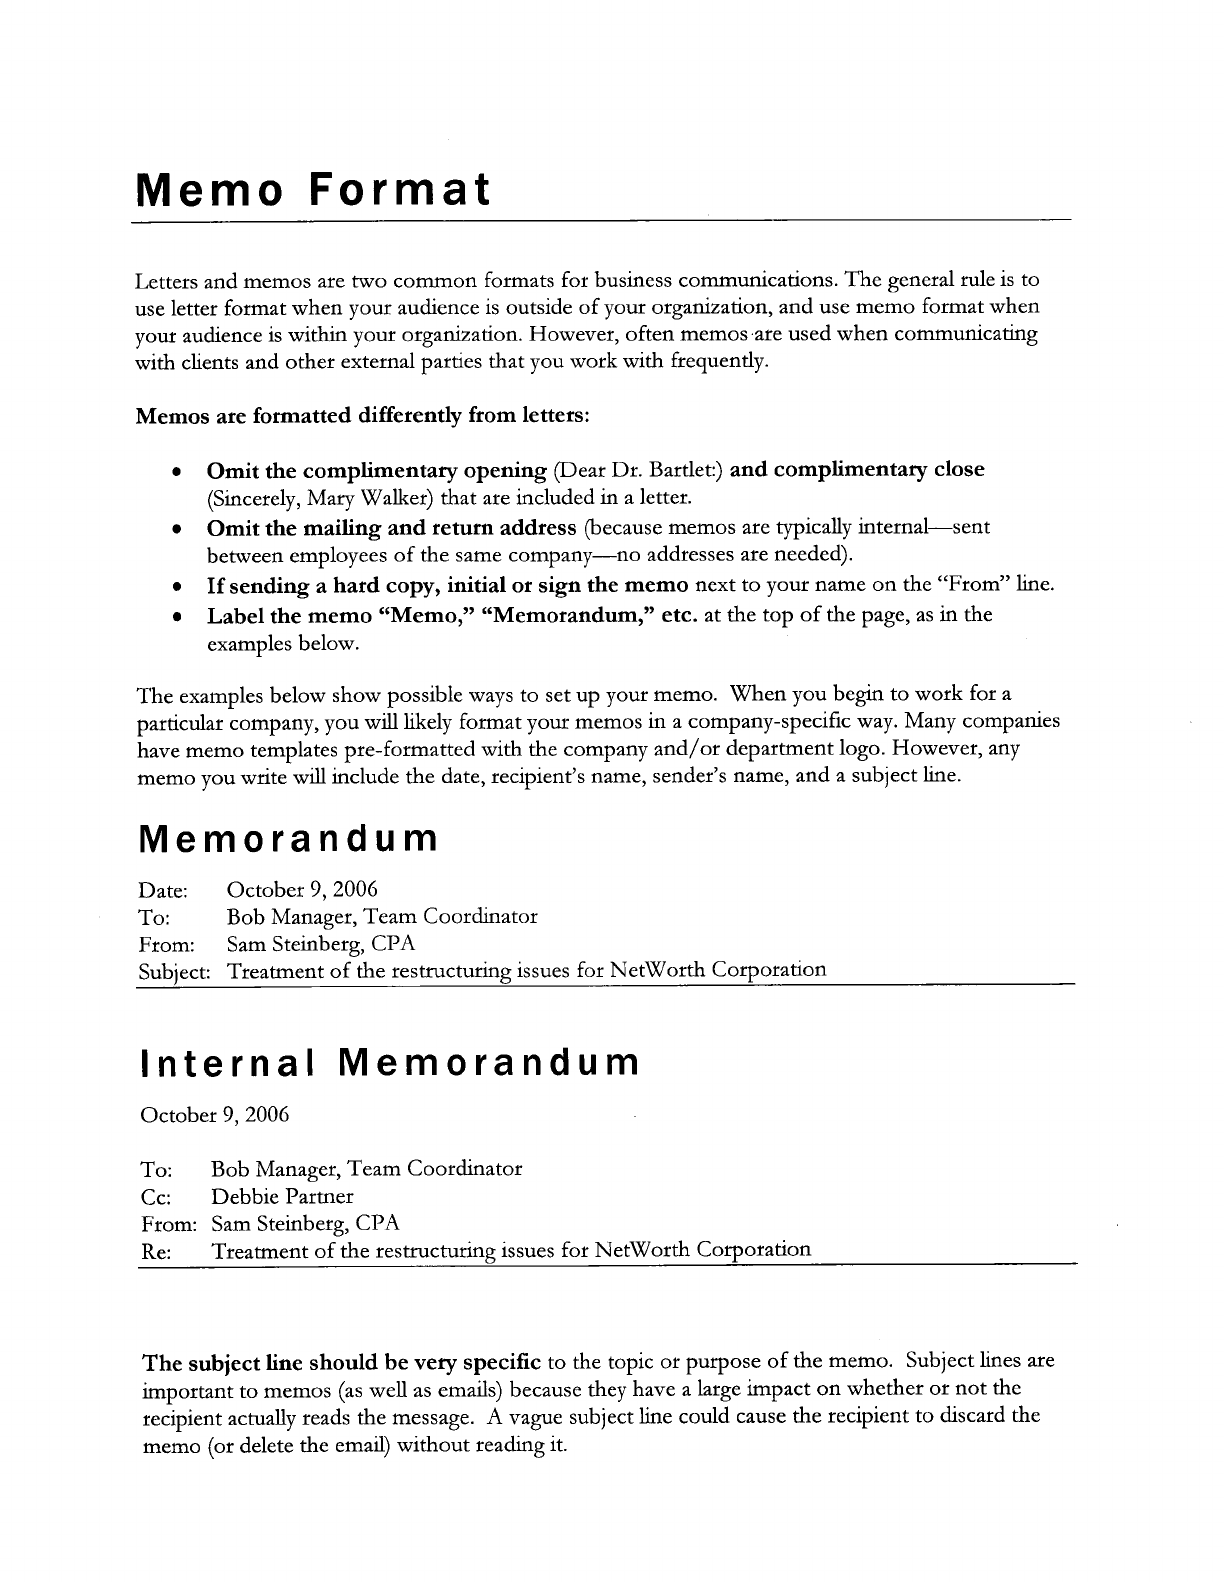 internal memorandums